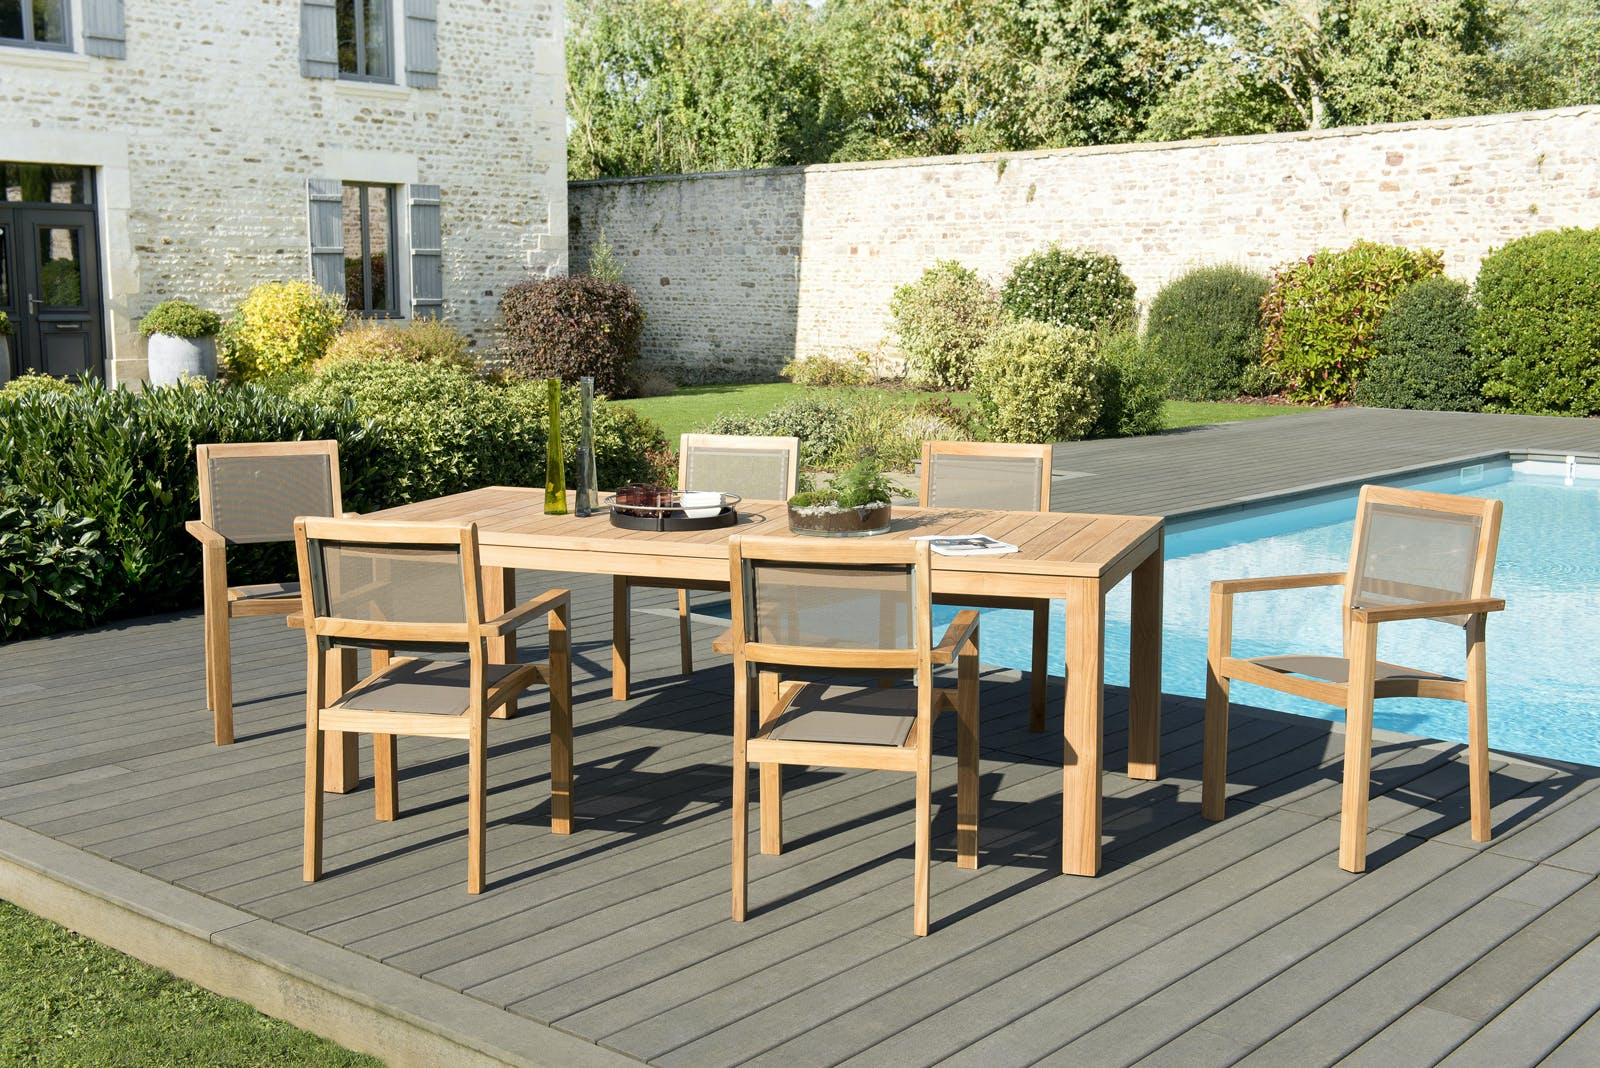 Salon de Jardin Teck Table 220x100 + 6 fauteuils empilables BERGEN ref. 30020839